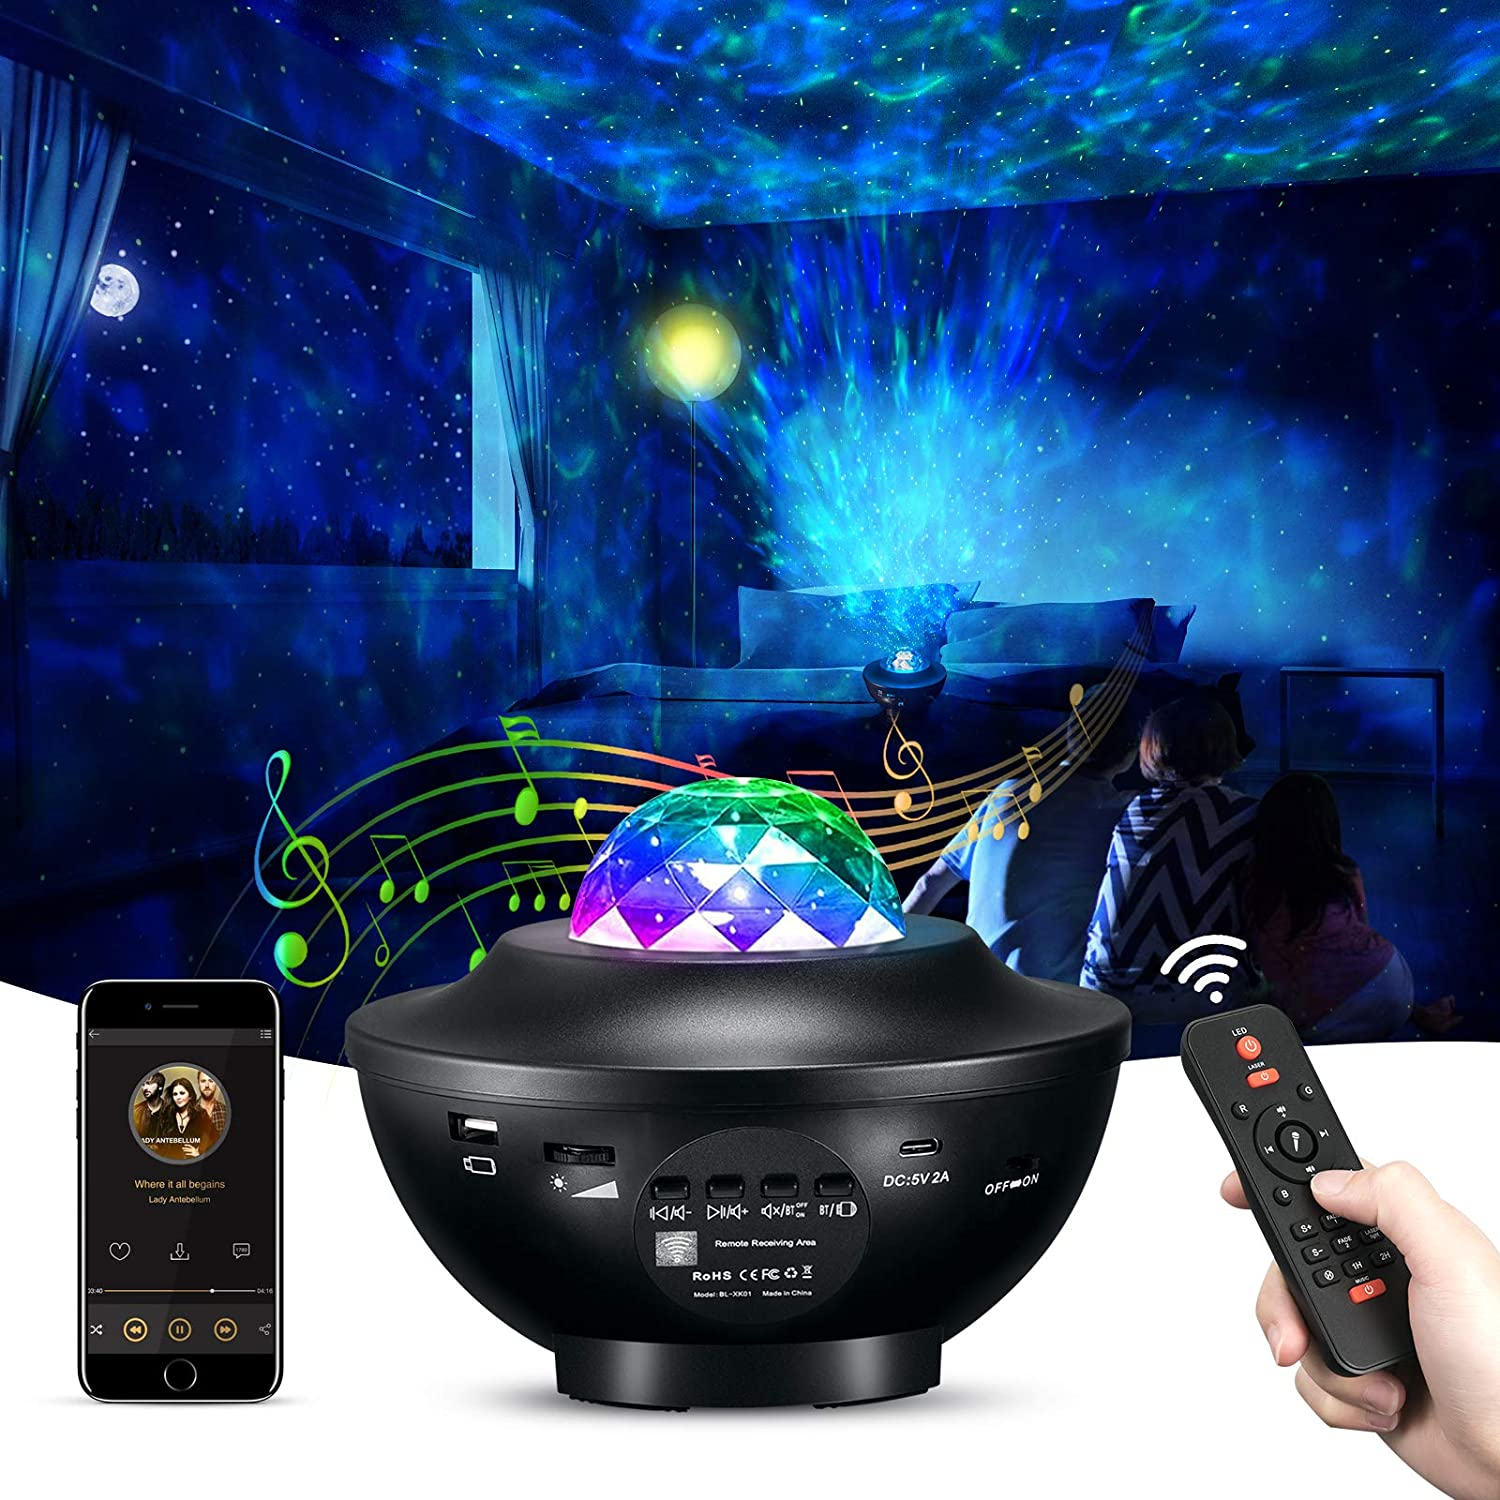 Janusoma Galaxy Projector Star Projector Laser Light with Bluetooth Speaker, 10 Colors Changing Night Light for Bedroom Decoration